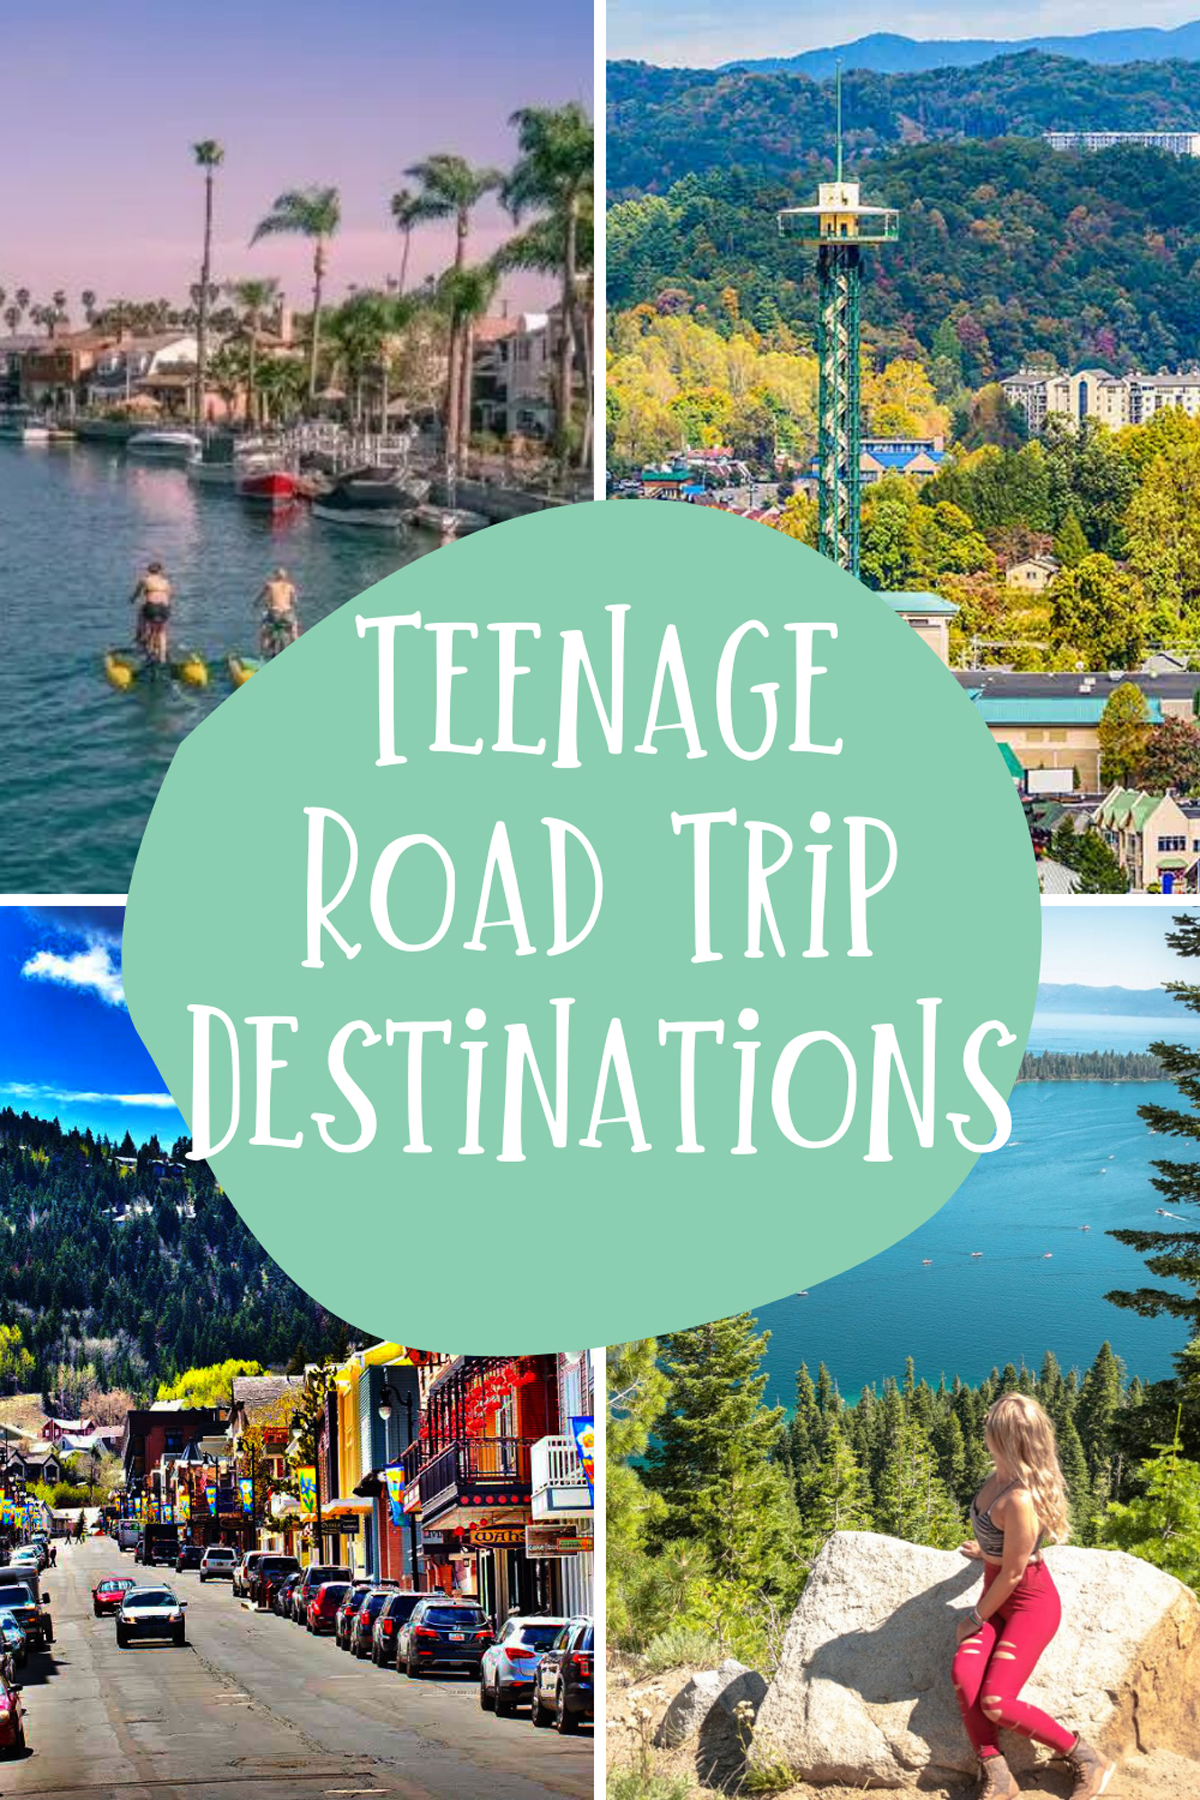 Teenage Vacation Destinations Drive To